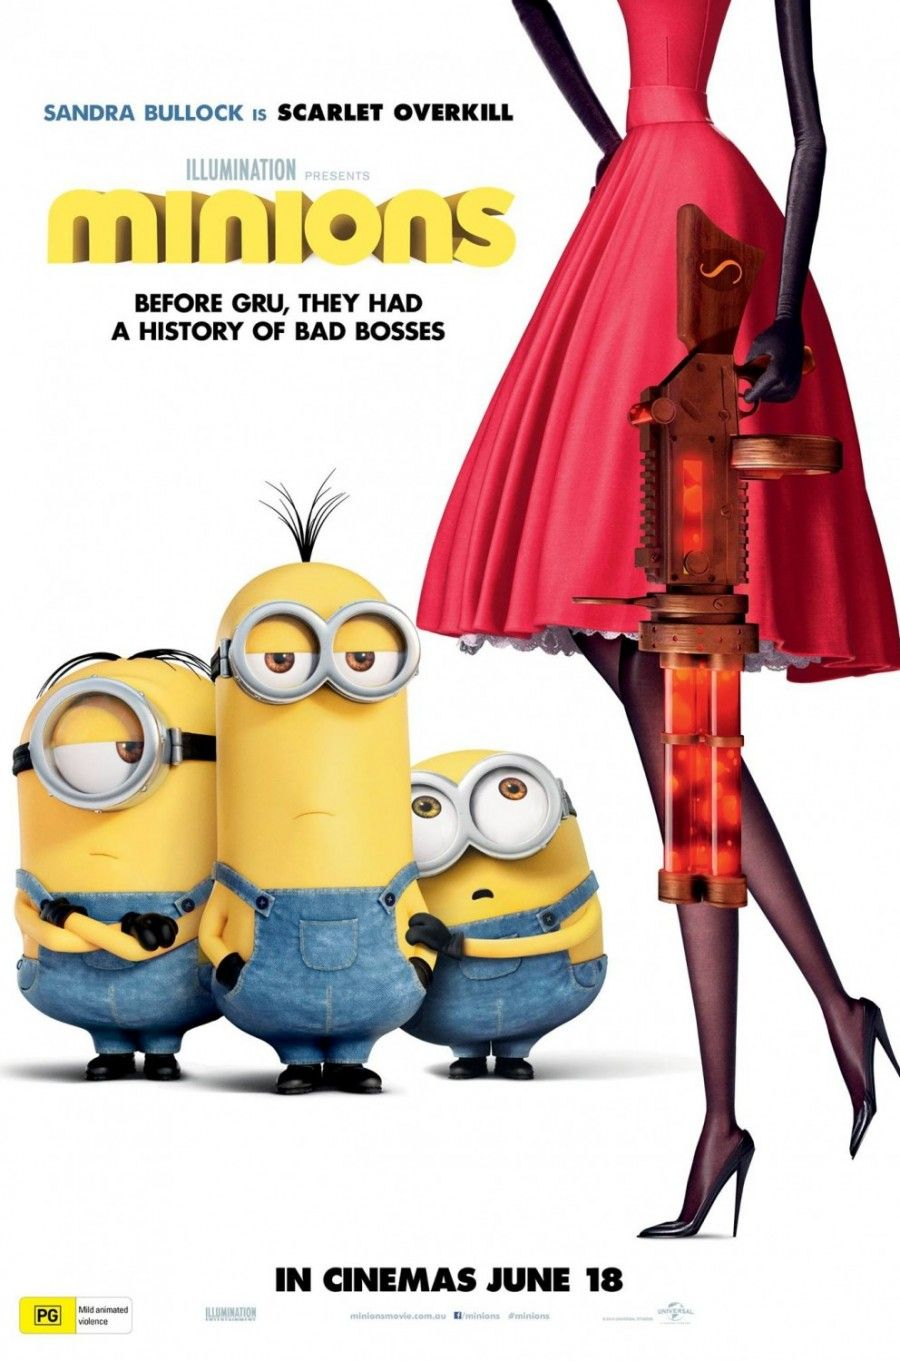 That Doesnt Look Like A Fart Gun Stuart Kevin And Bob With Scarlet Overkill From The Minions Movie